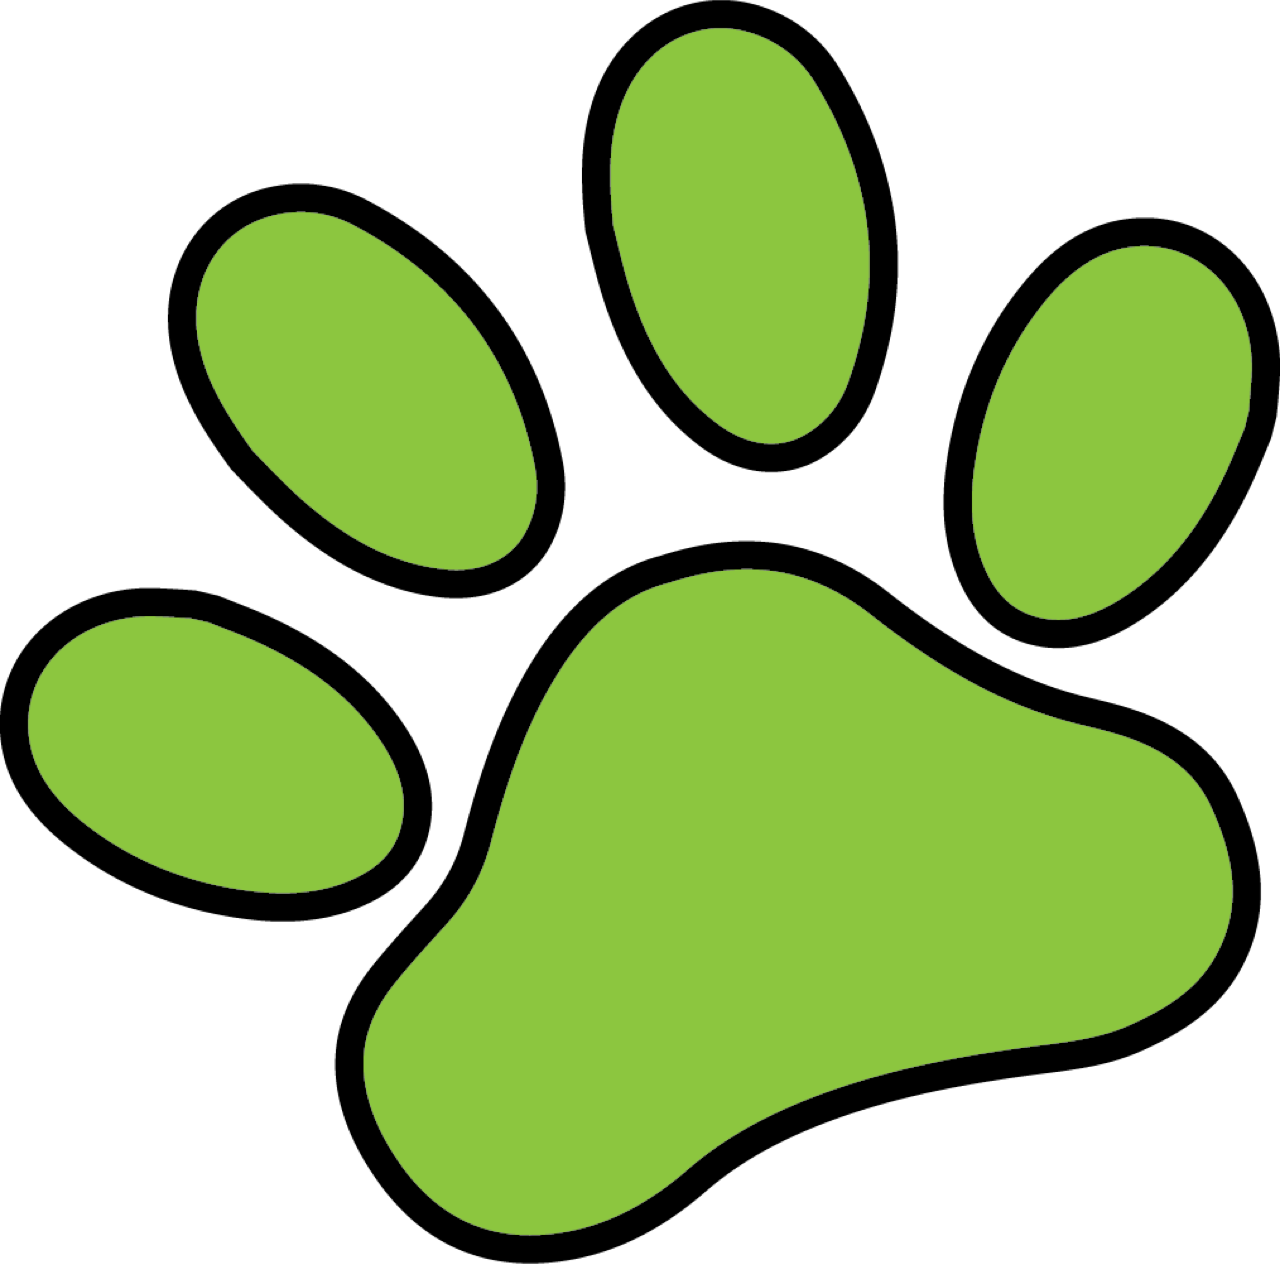 Green Paw Small.png